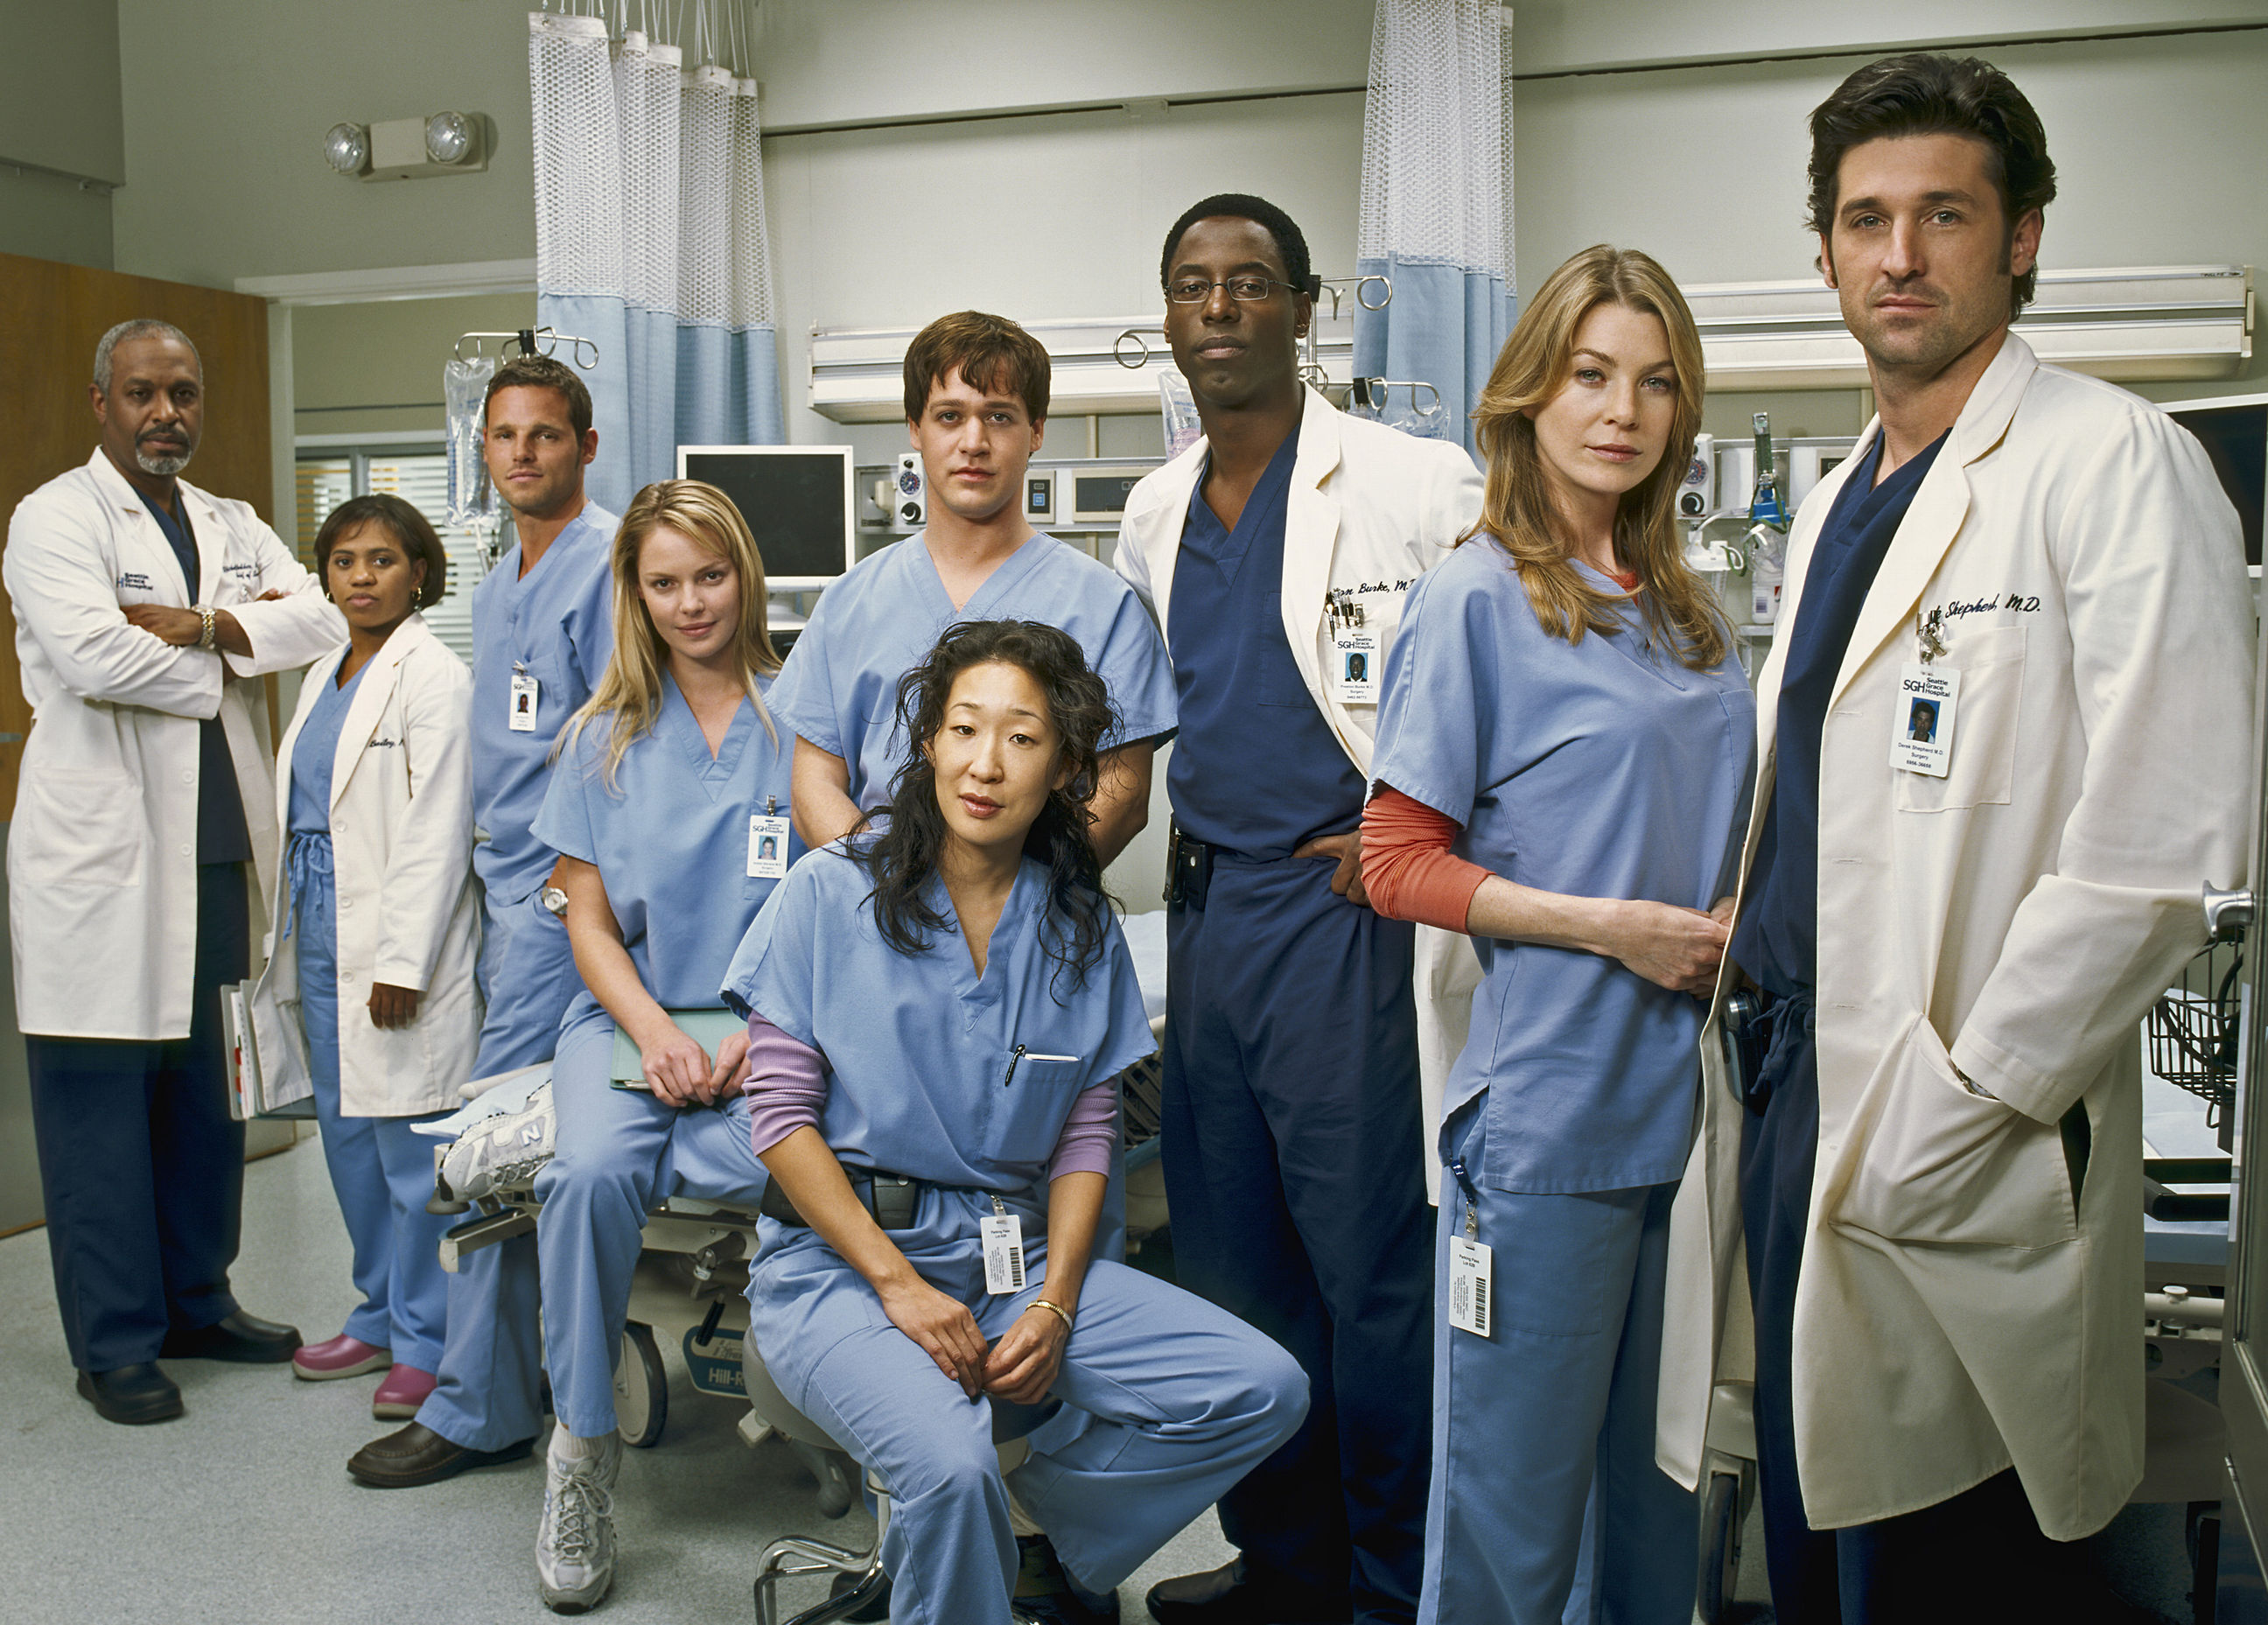 andrew greys anatomy cast - HD 1600×1200